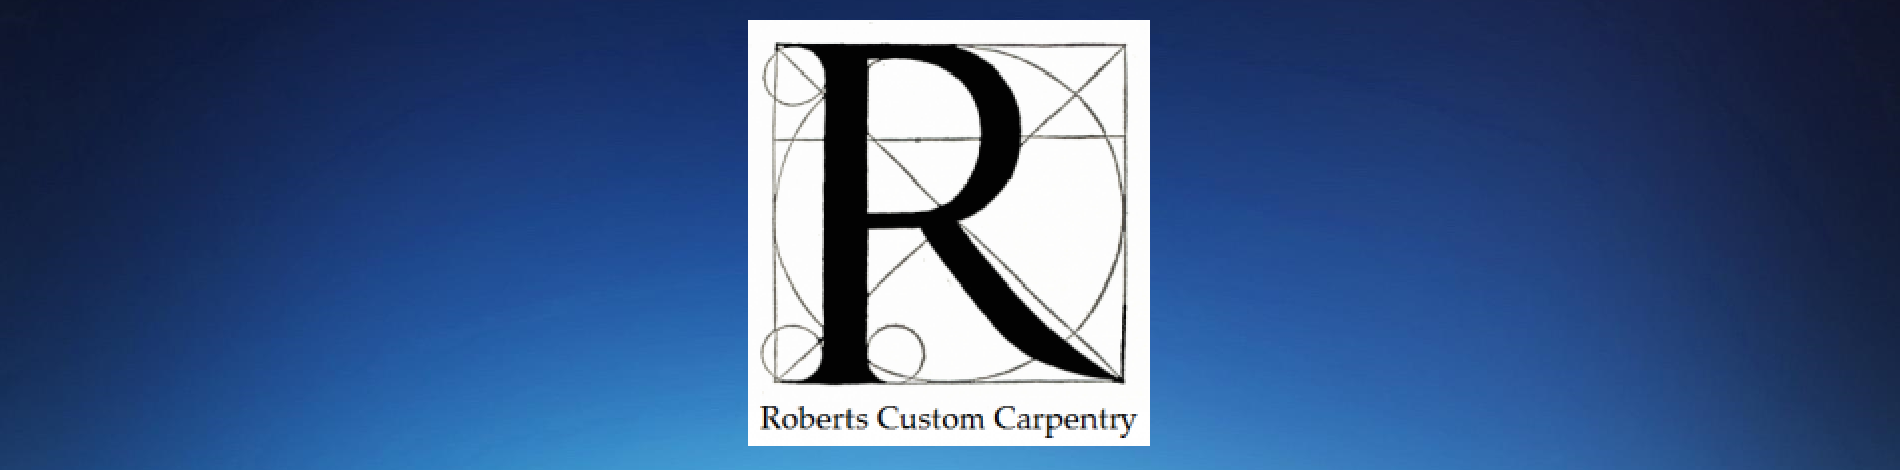 Roberts Custom Carpentry